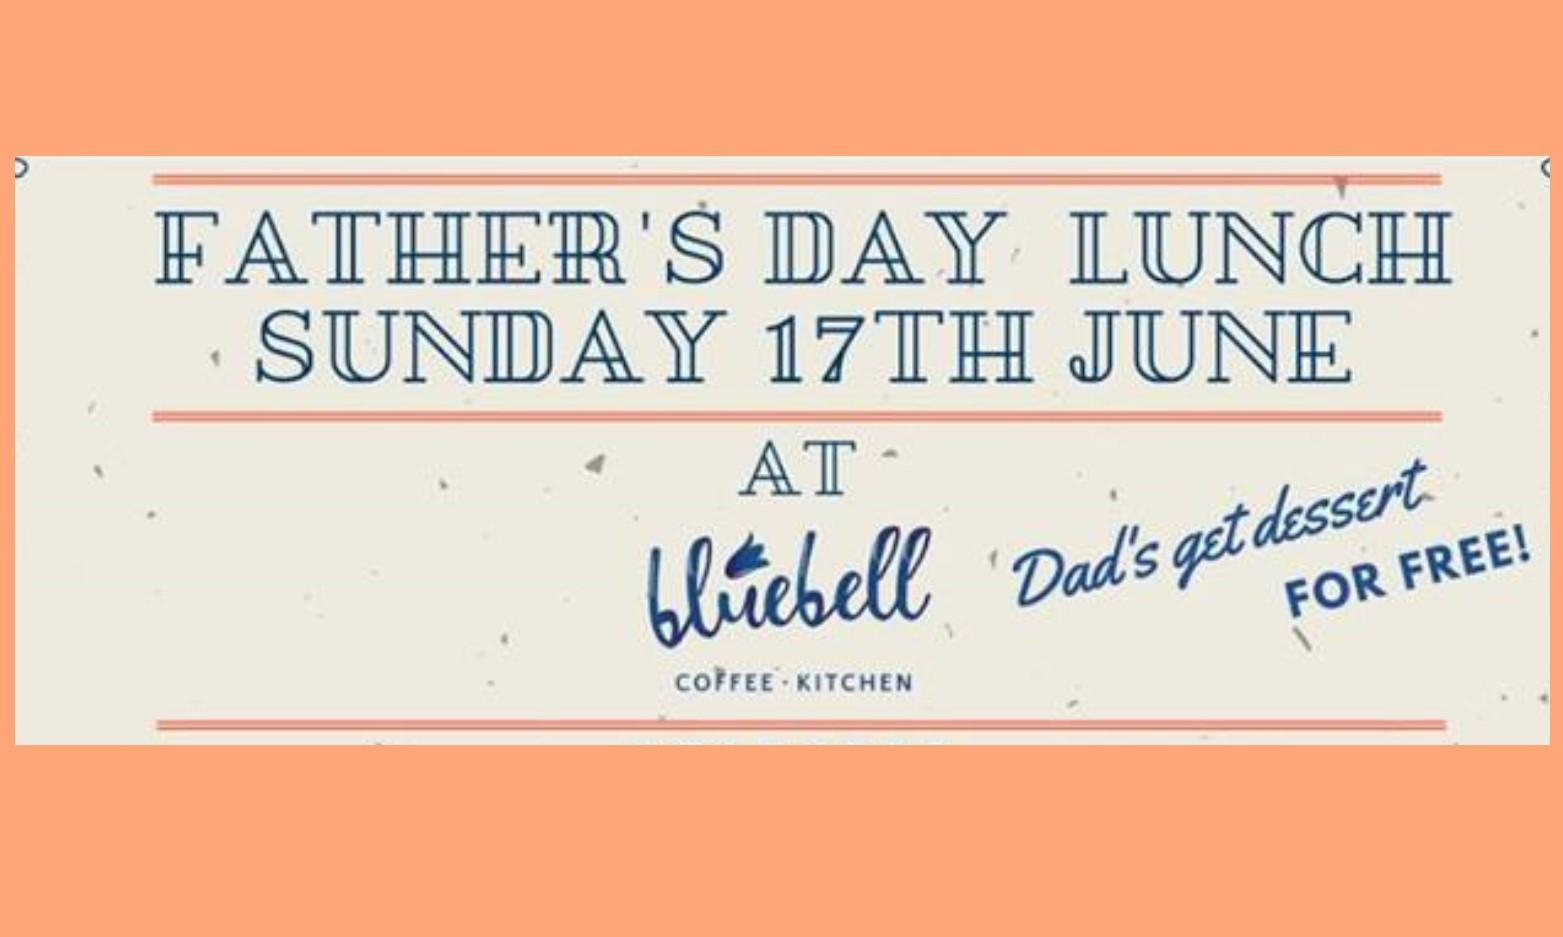 FREE Desserts for Dad for Father's Day at Bluebell Coffee and Kitchen